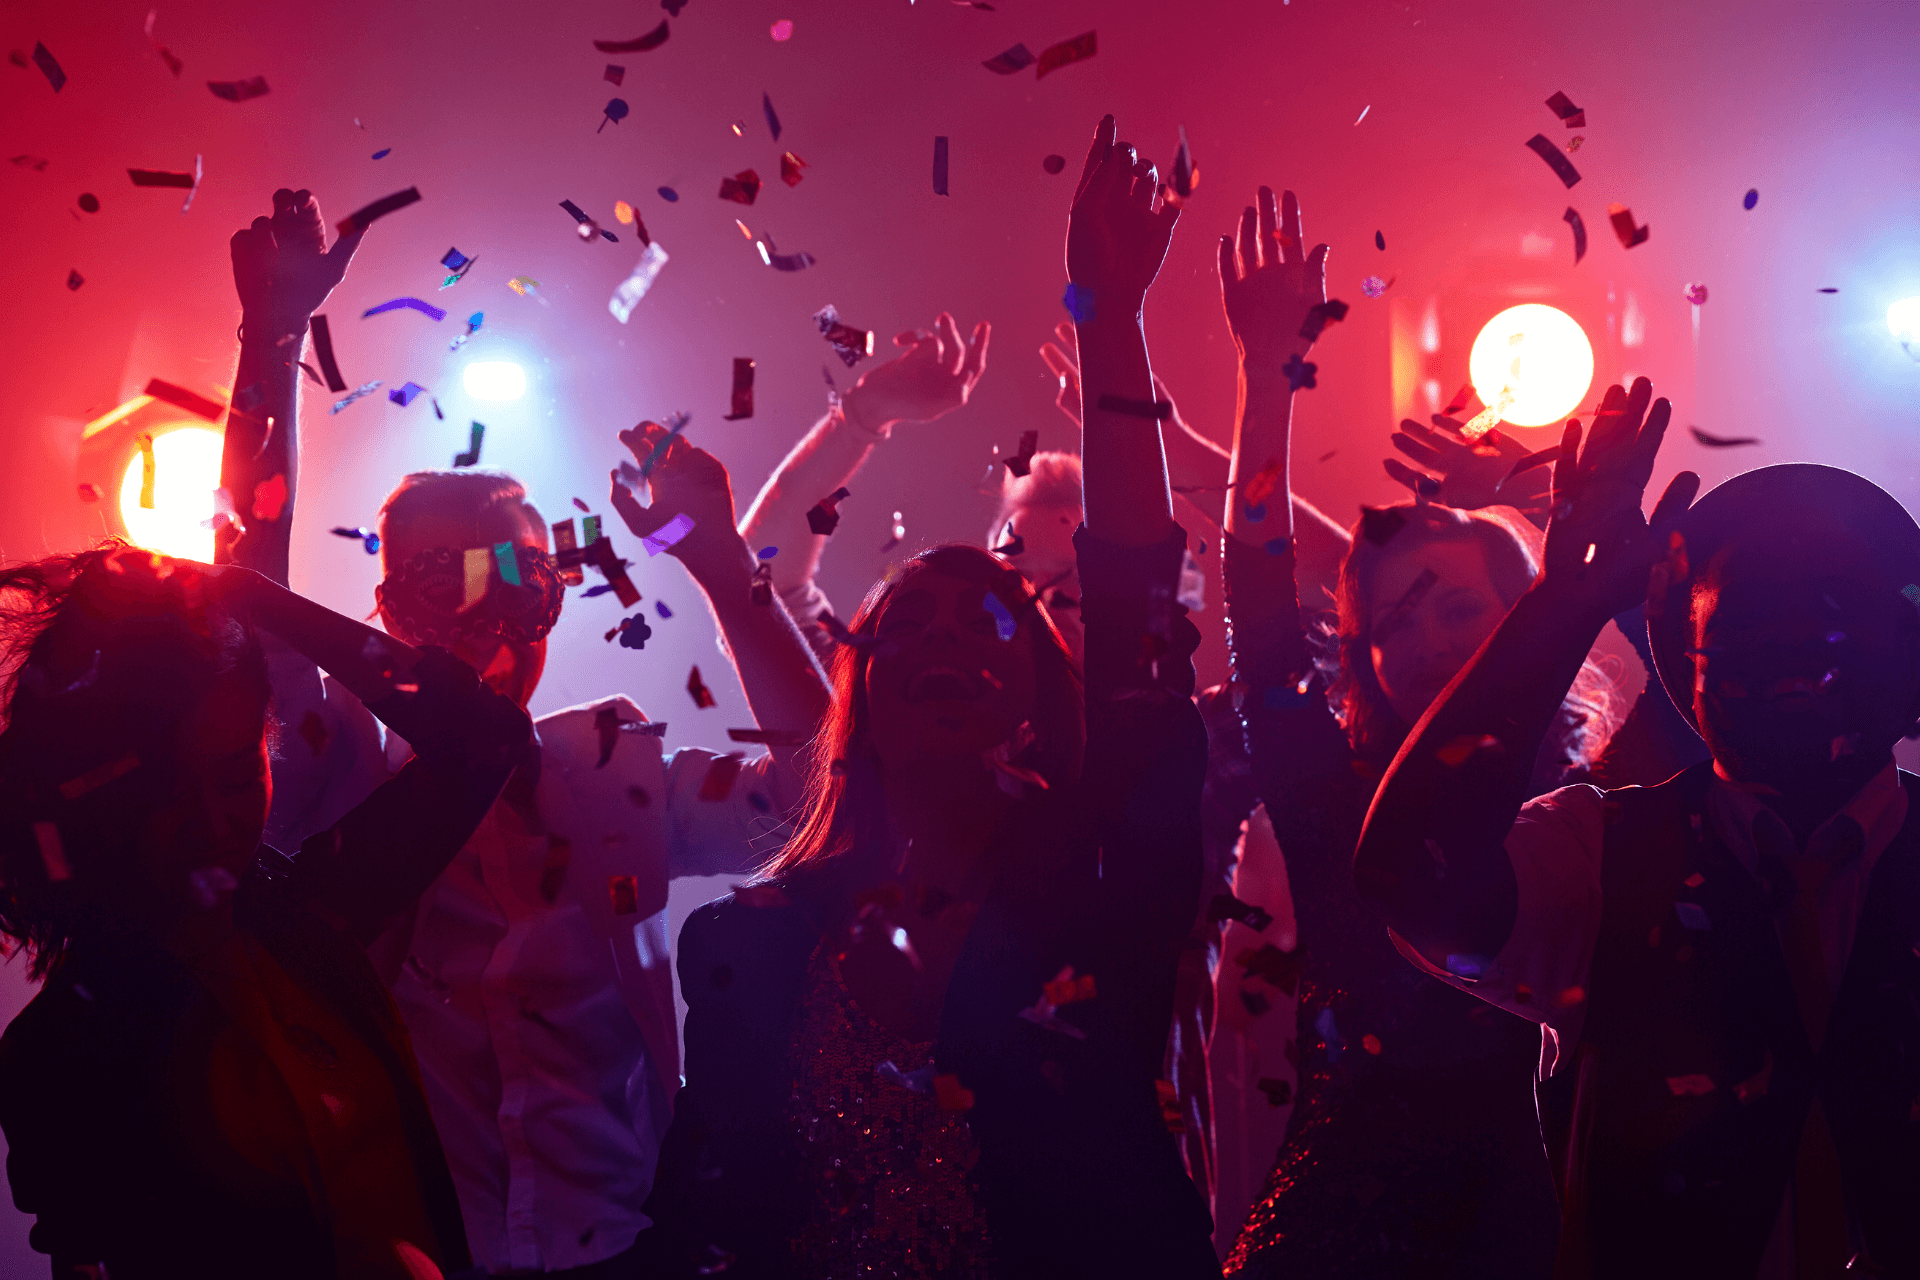 People dancing at a club